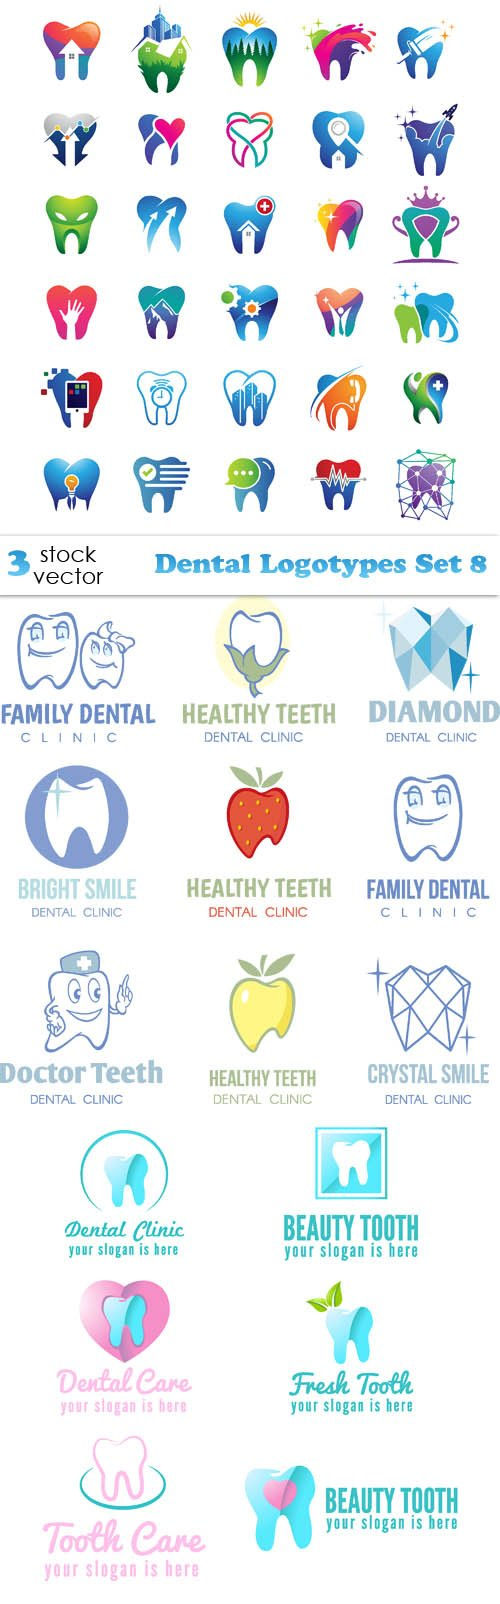 Vectors - Dental Logotypes Set 8